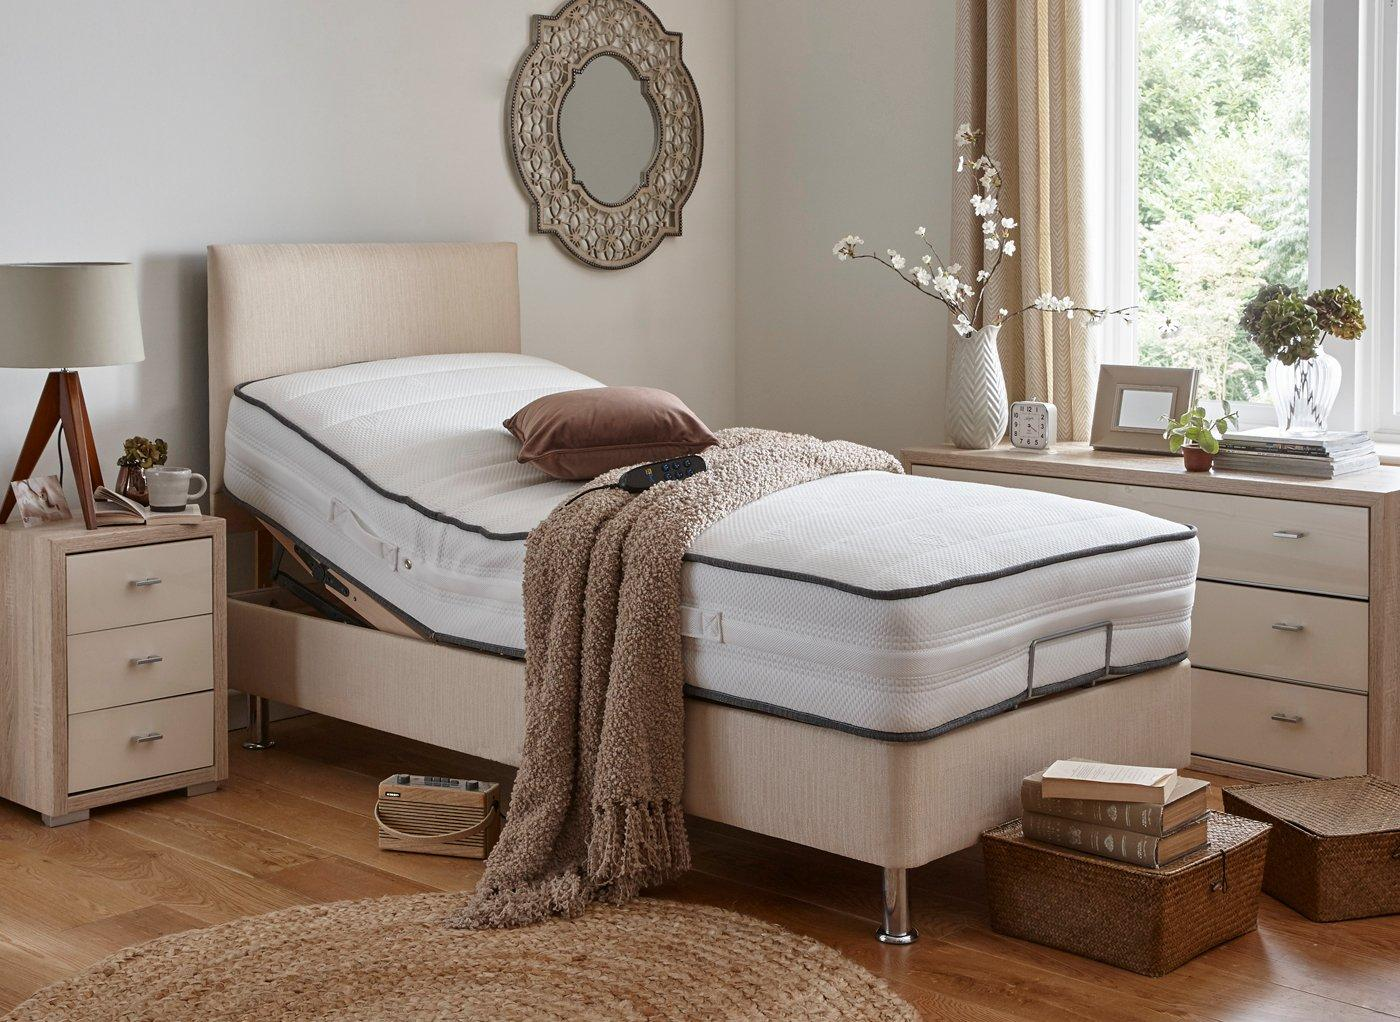 Westwood Mattress With Standard Oatmeal Adjustable Divan Bed On Legs - Medium Firm BEIGE